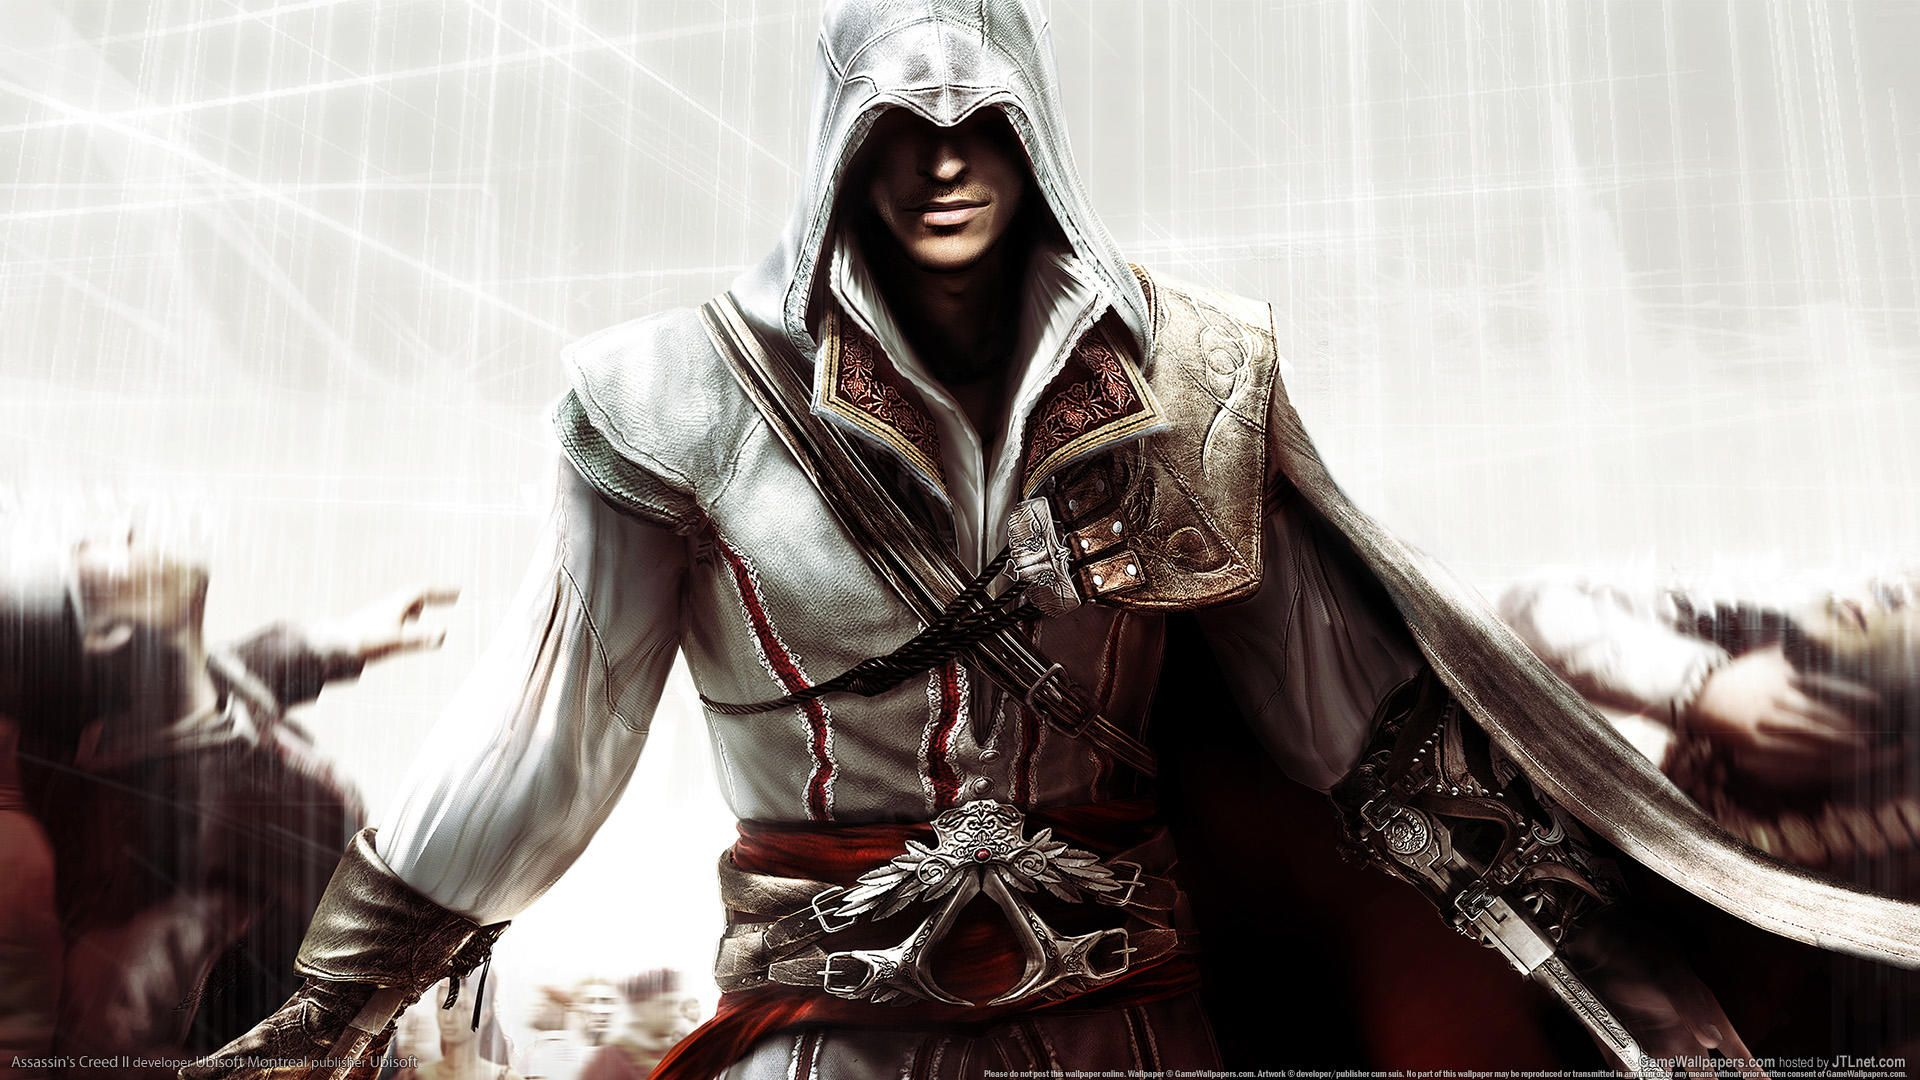 Assassin's Creed Ii Cover